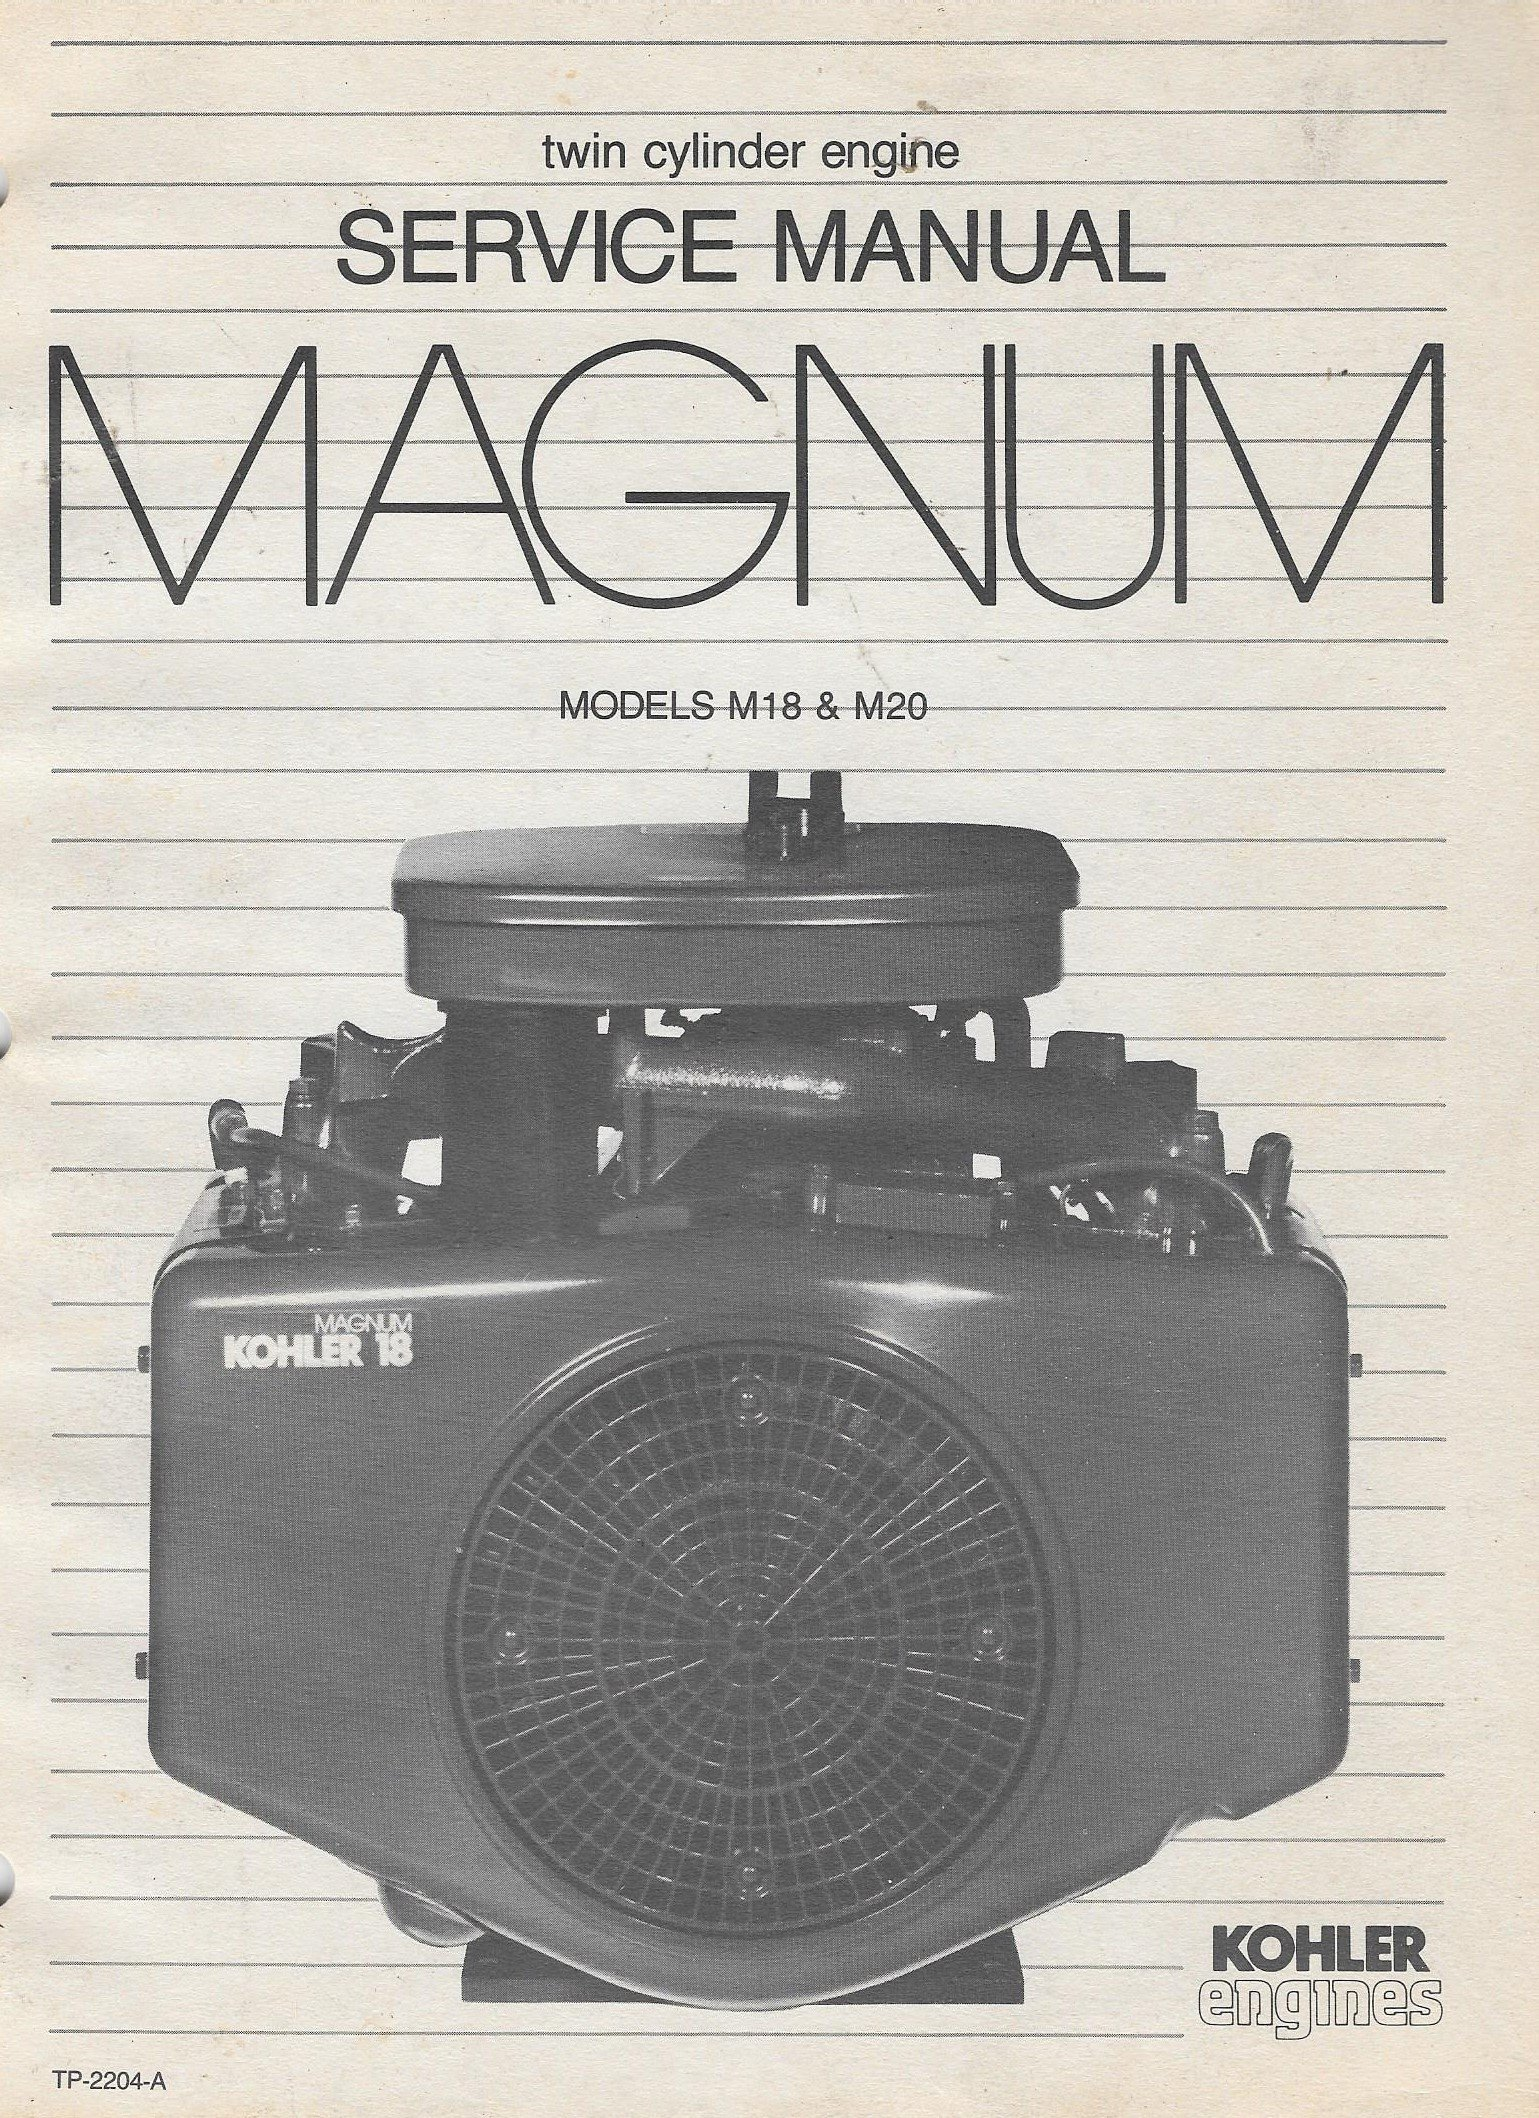 Twin Service Manual Magnum Models M18 & M20: Kohler Engines: Amazon.com:  Books